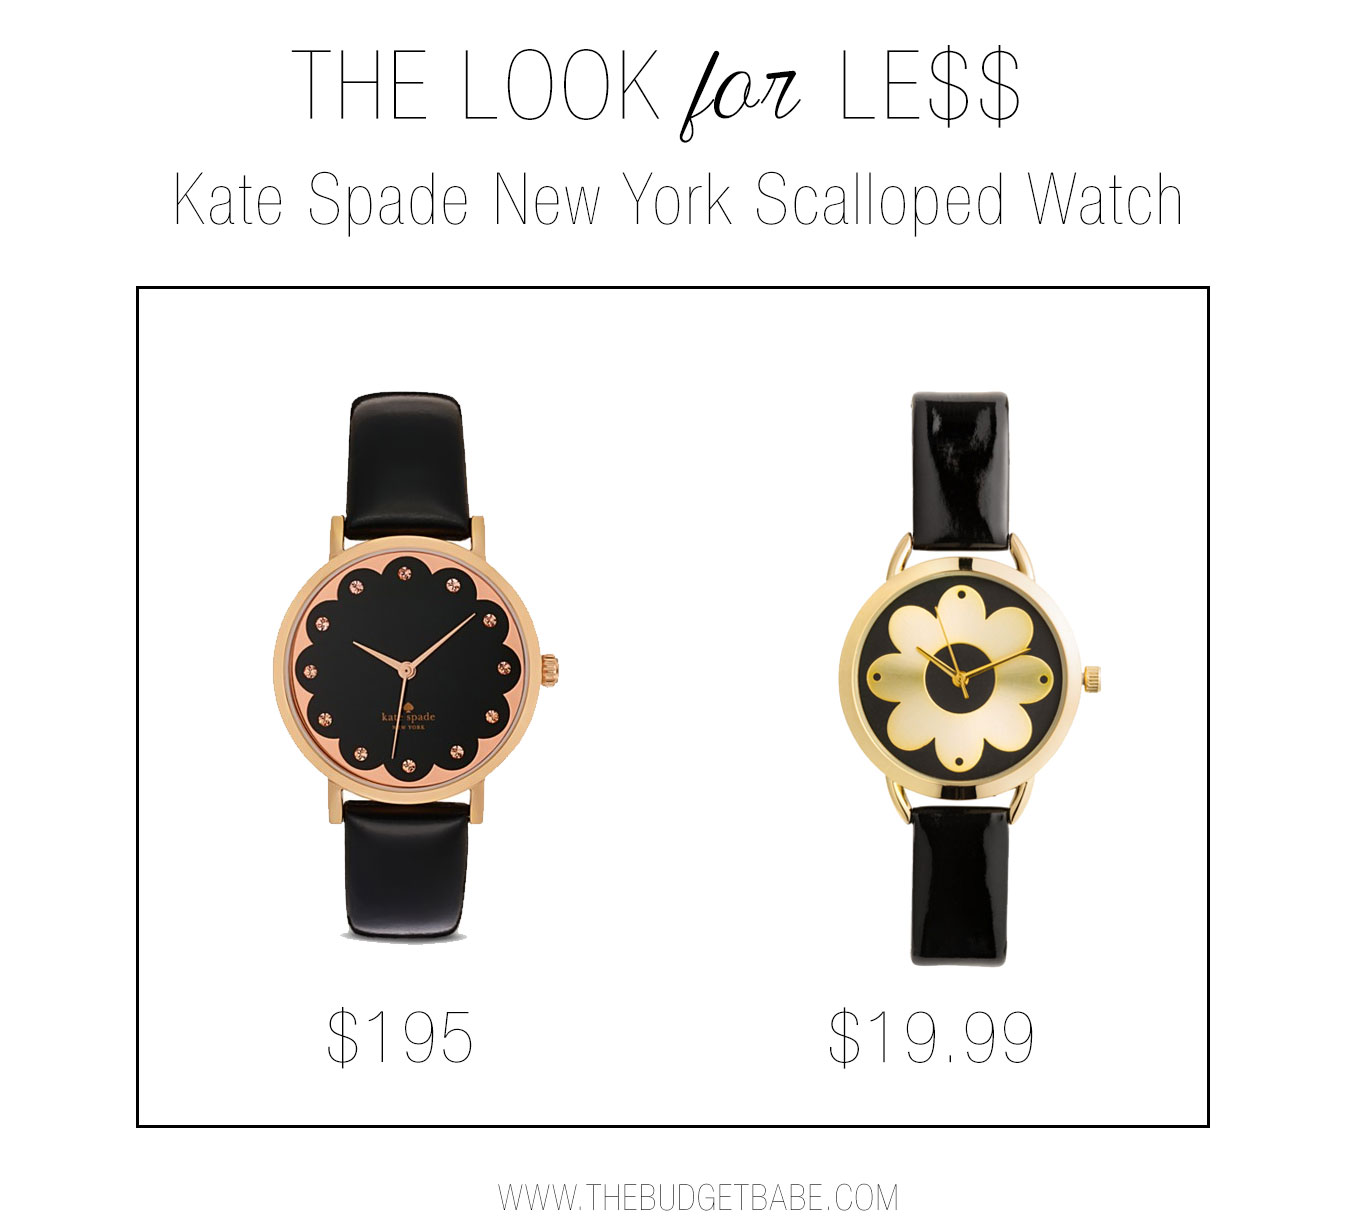 The Look for Less: Kate Spade Scalloped Watch